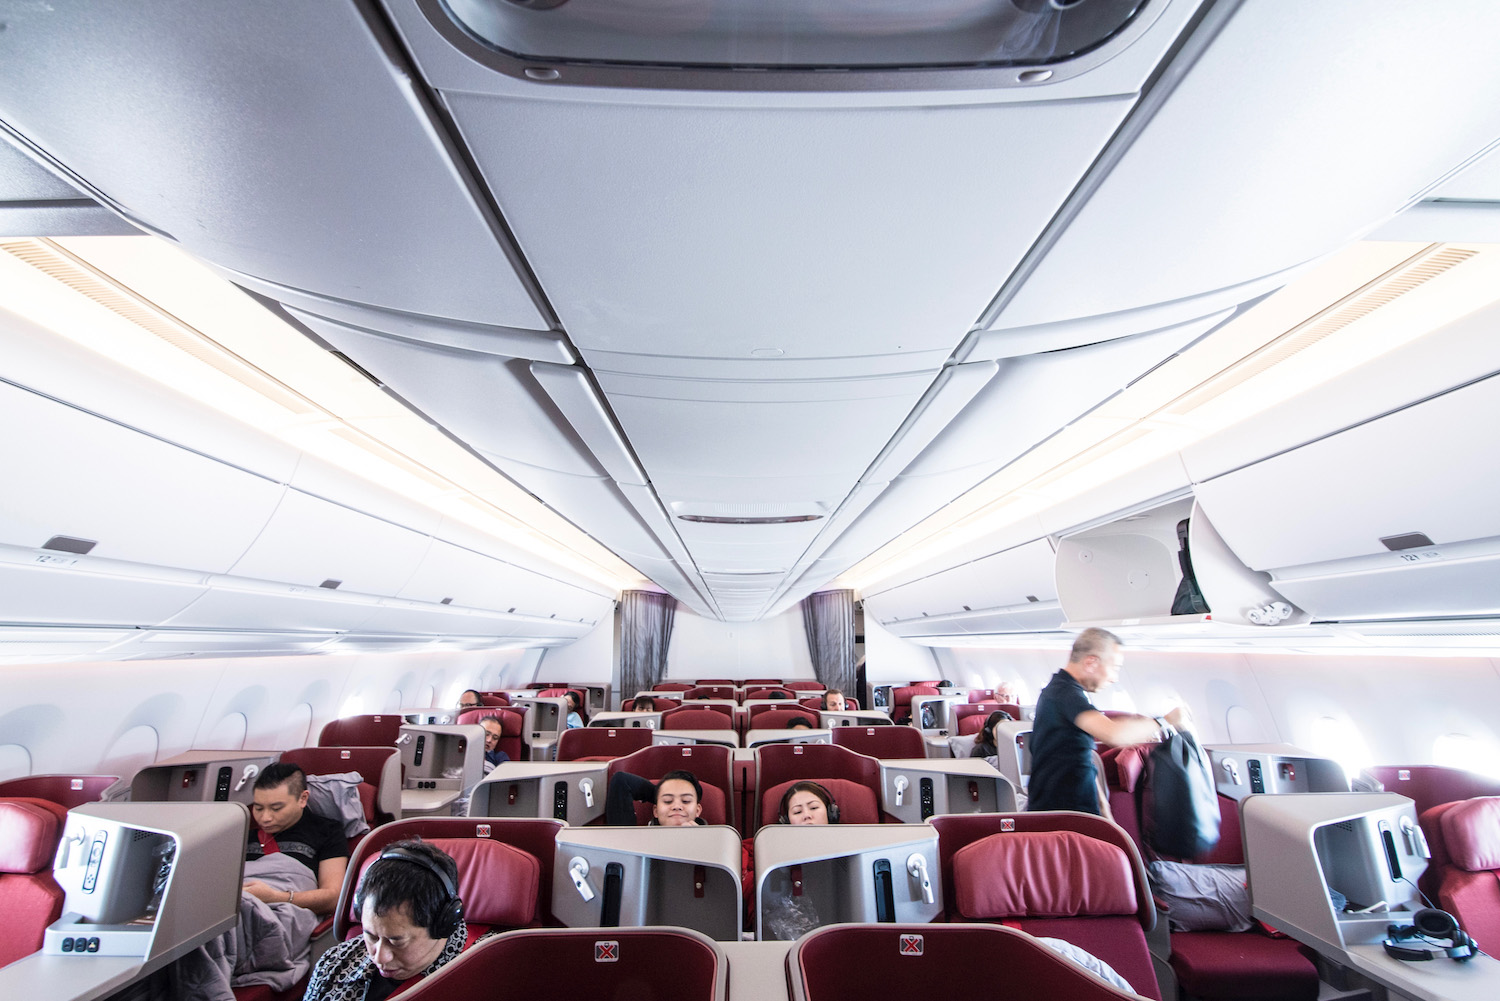 What is the Best Airline to Fly to Japan in Business Class?